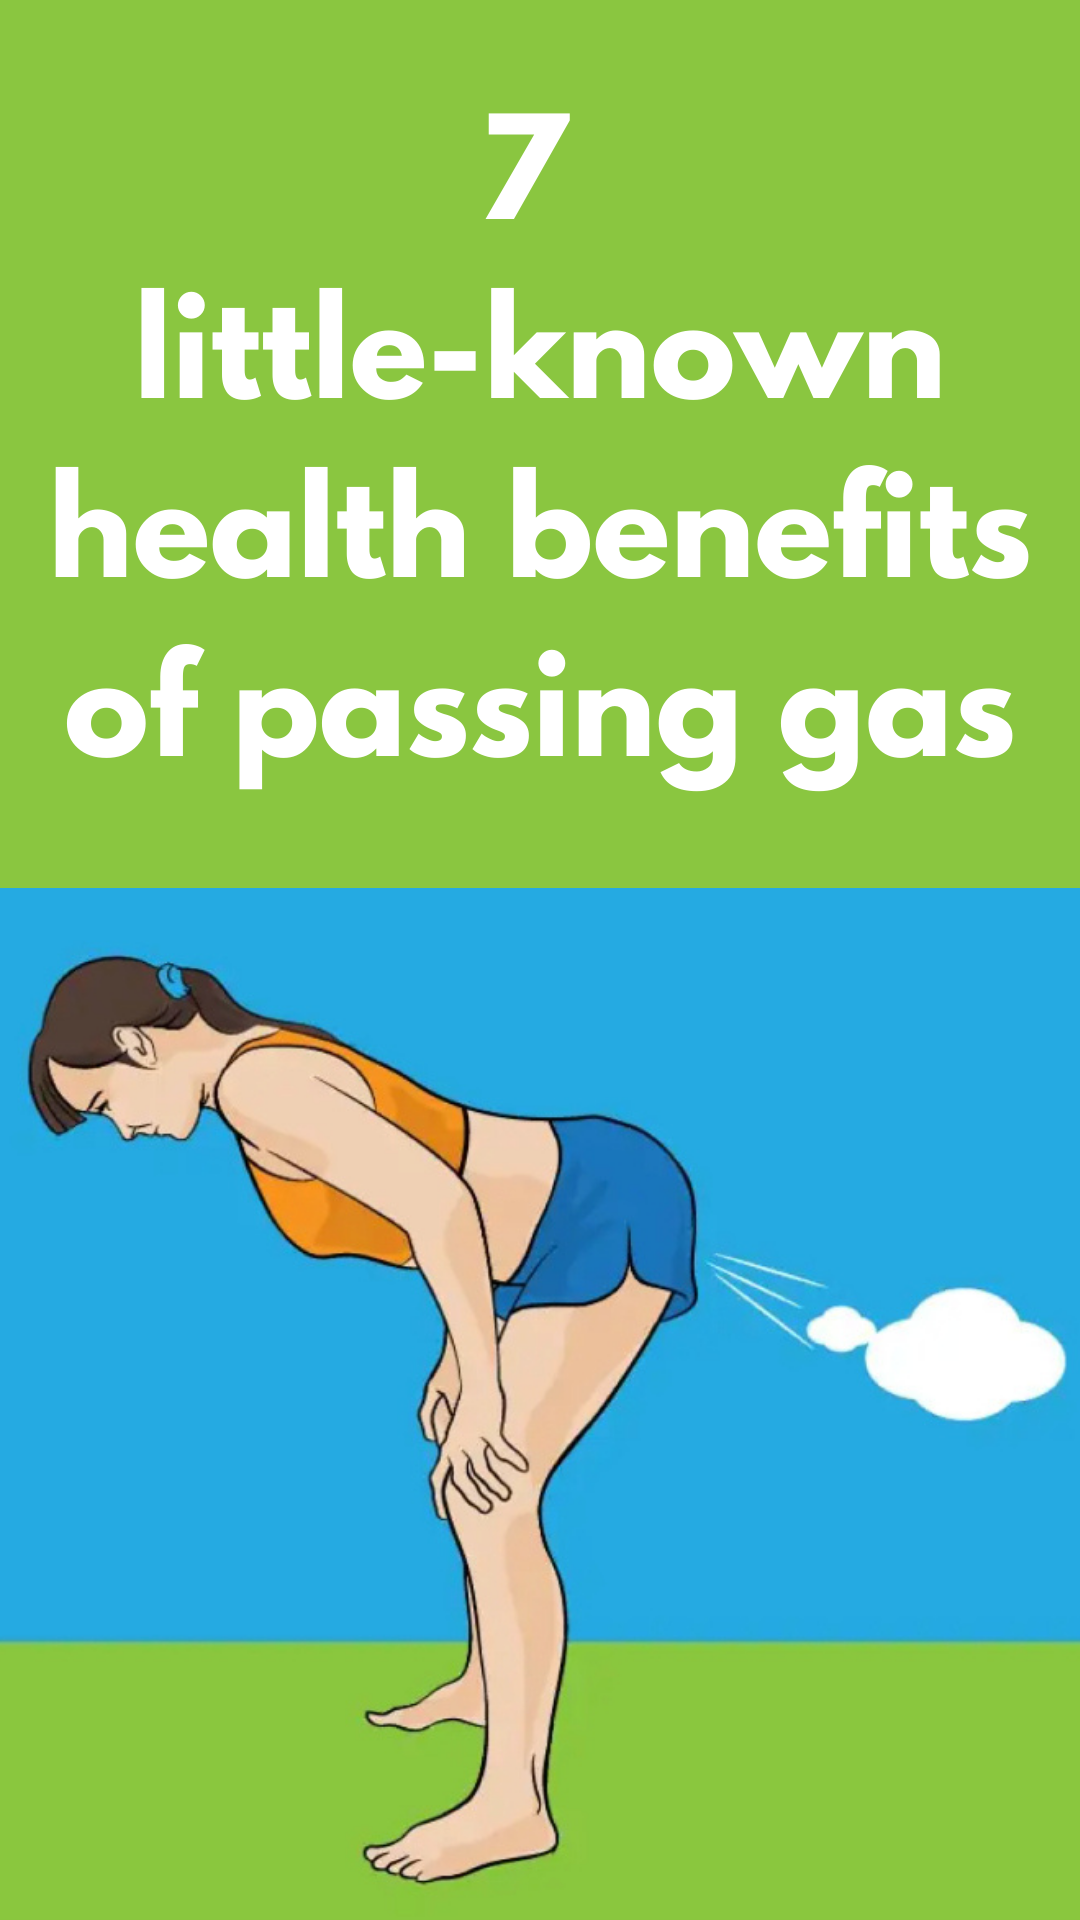 7 little-known health benefits of passing gas